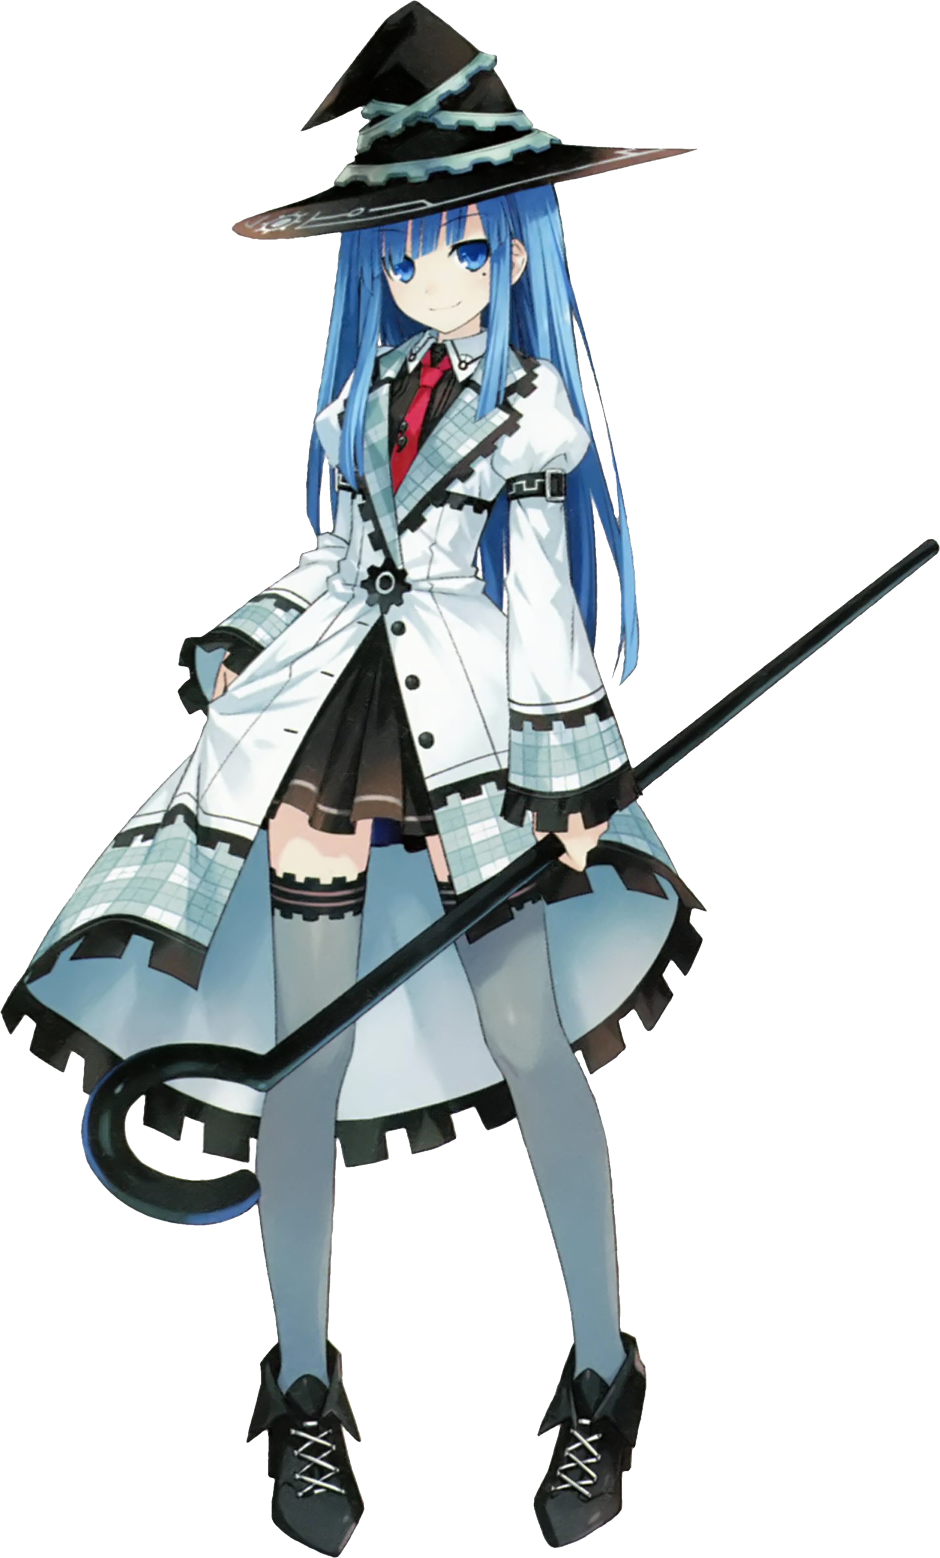 Mages Hyperdimension Neptunia Wiki Fandom Powered By Wikia